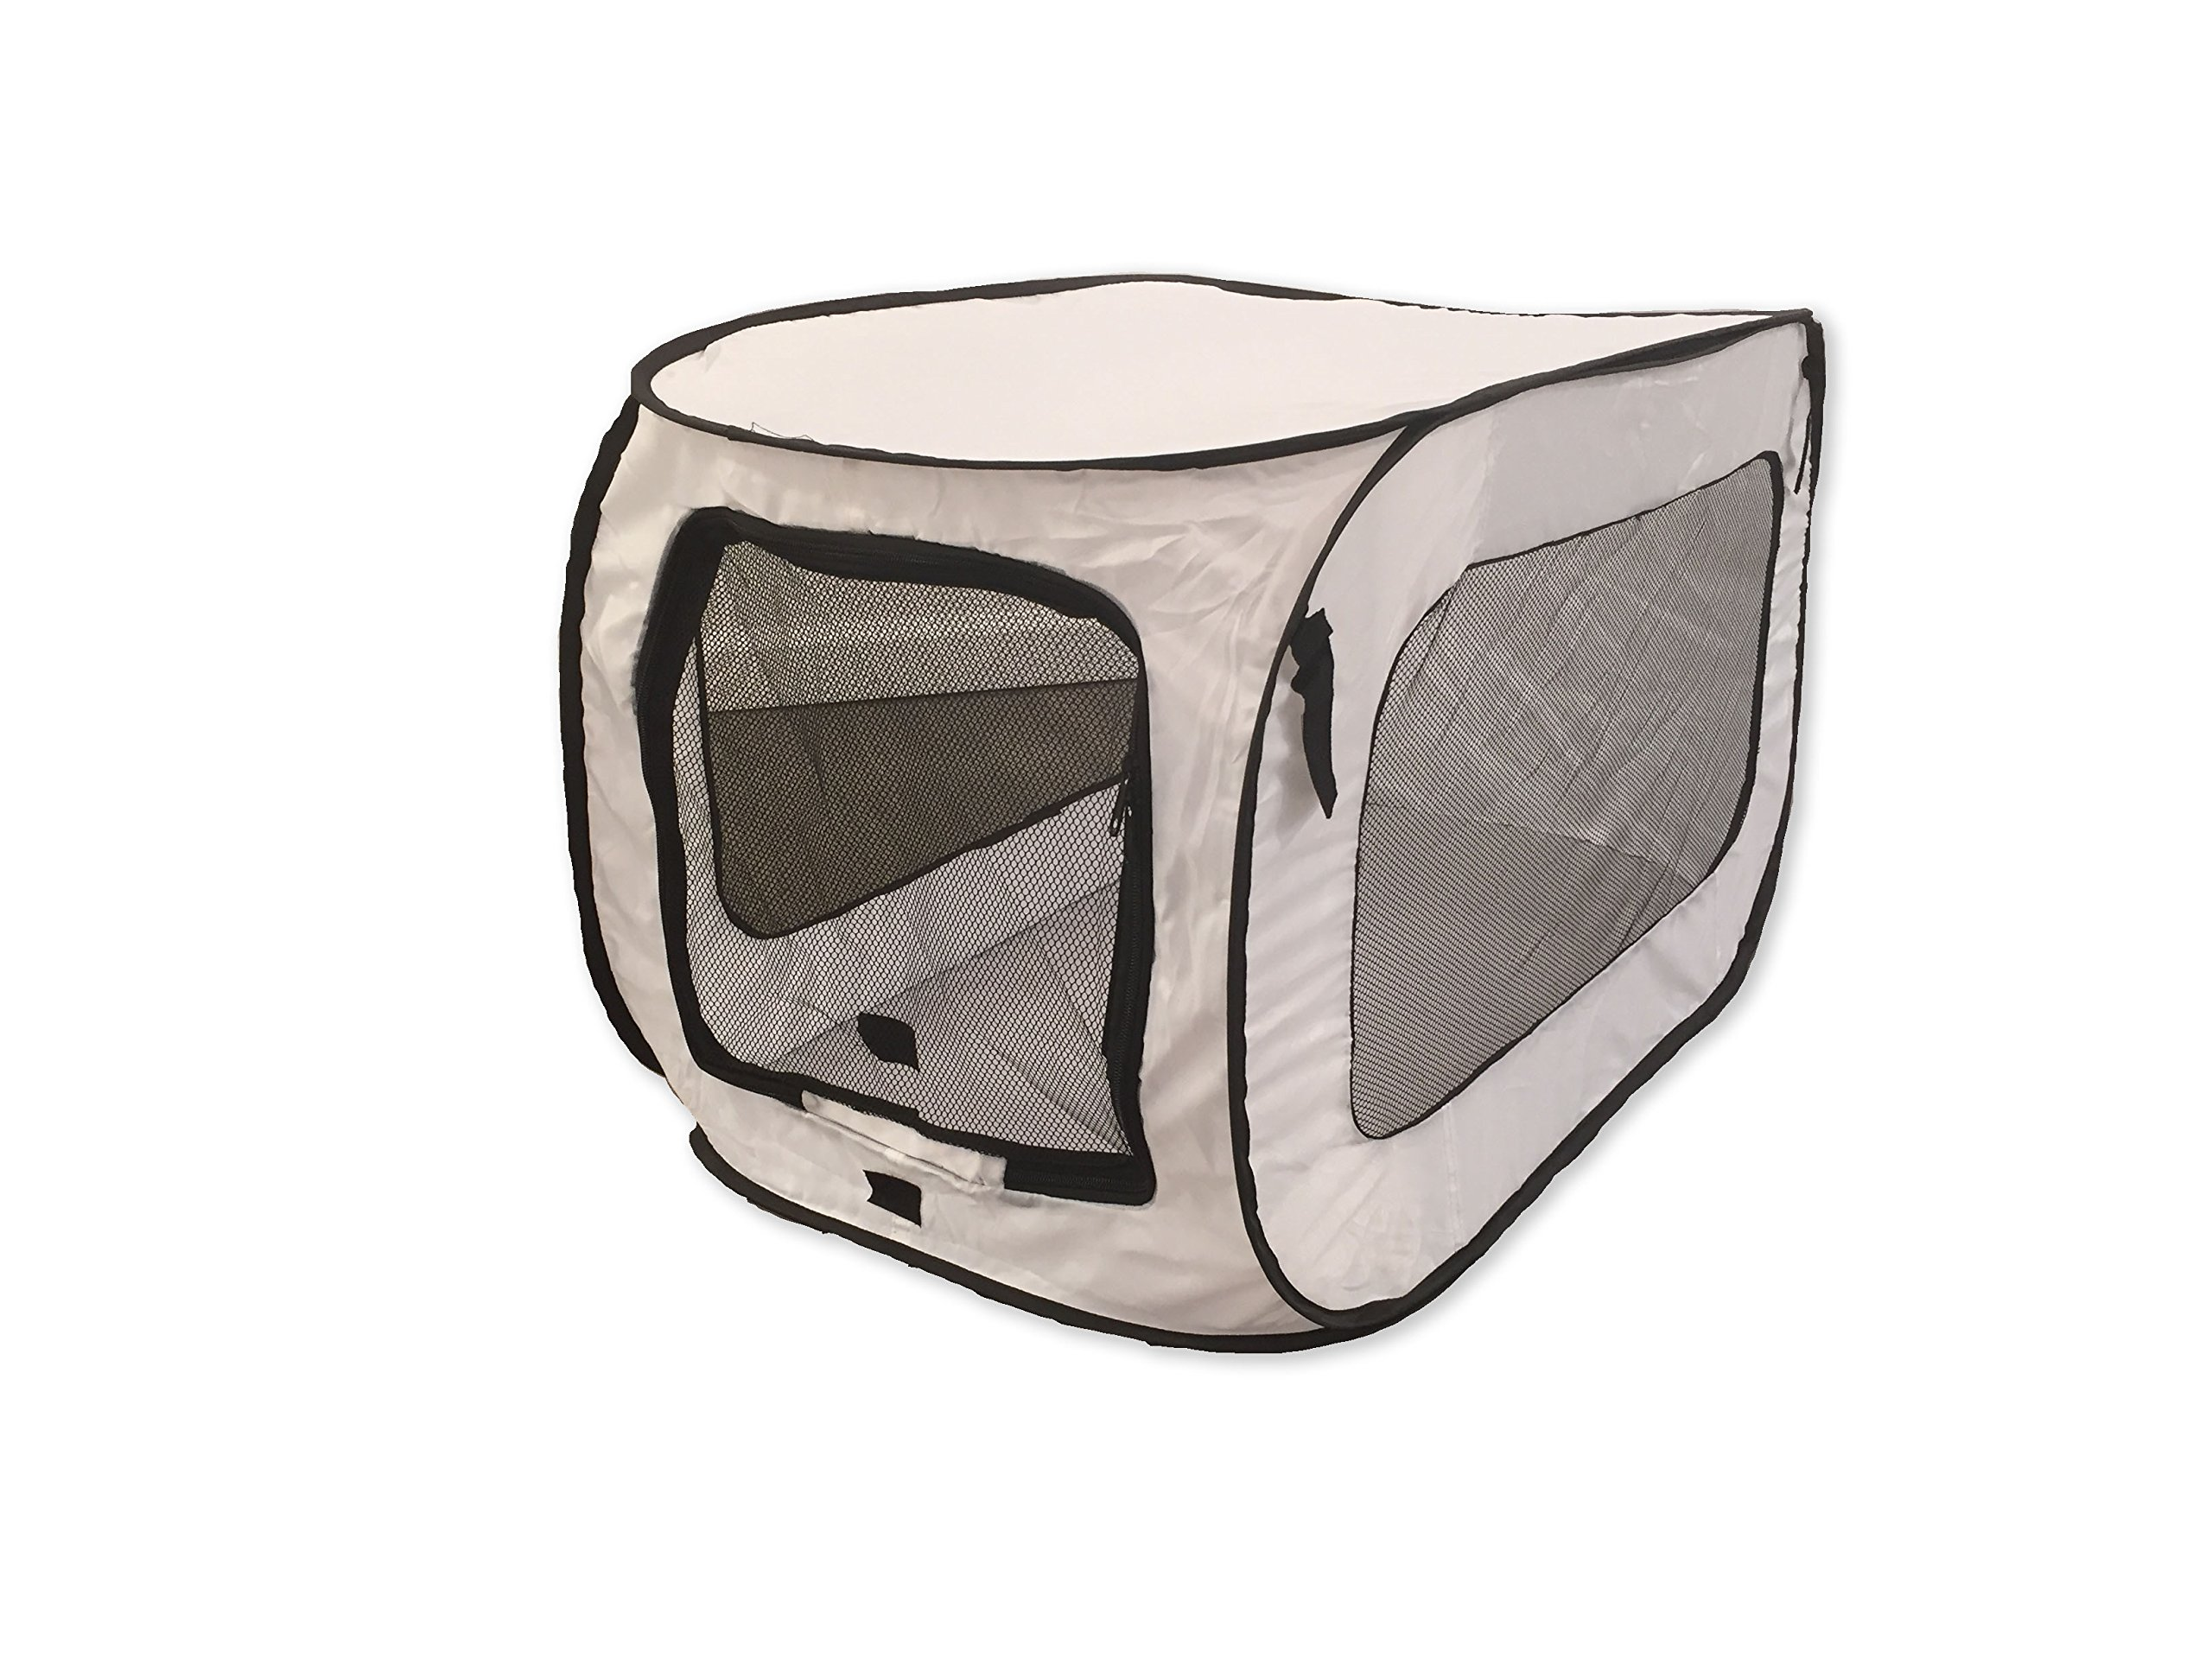 Beatrice Home Fashions SOLPPK00WHT POP UP PET Kennel, White